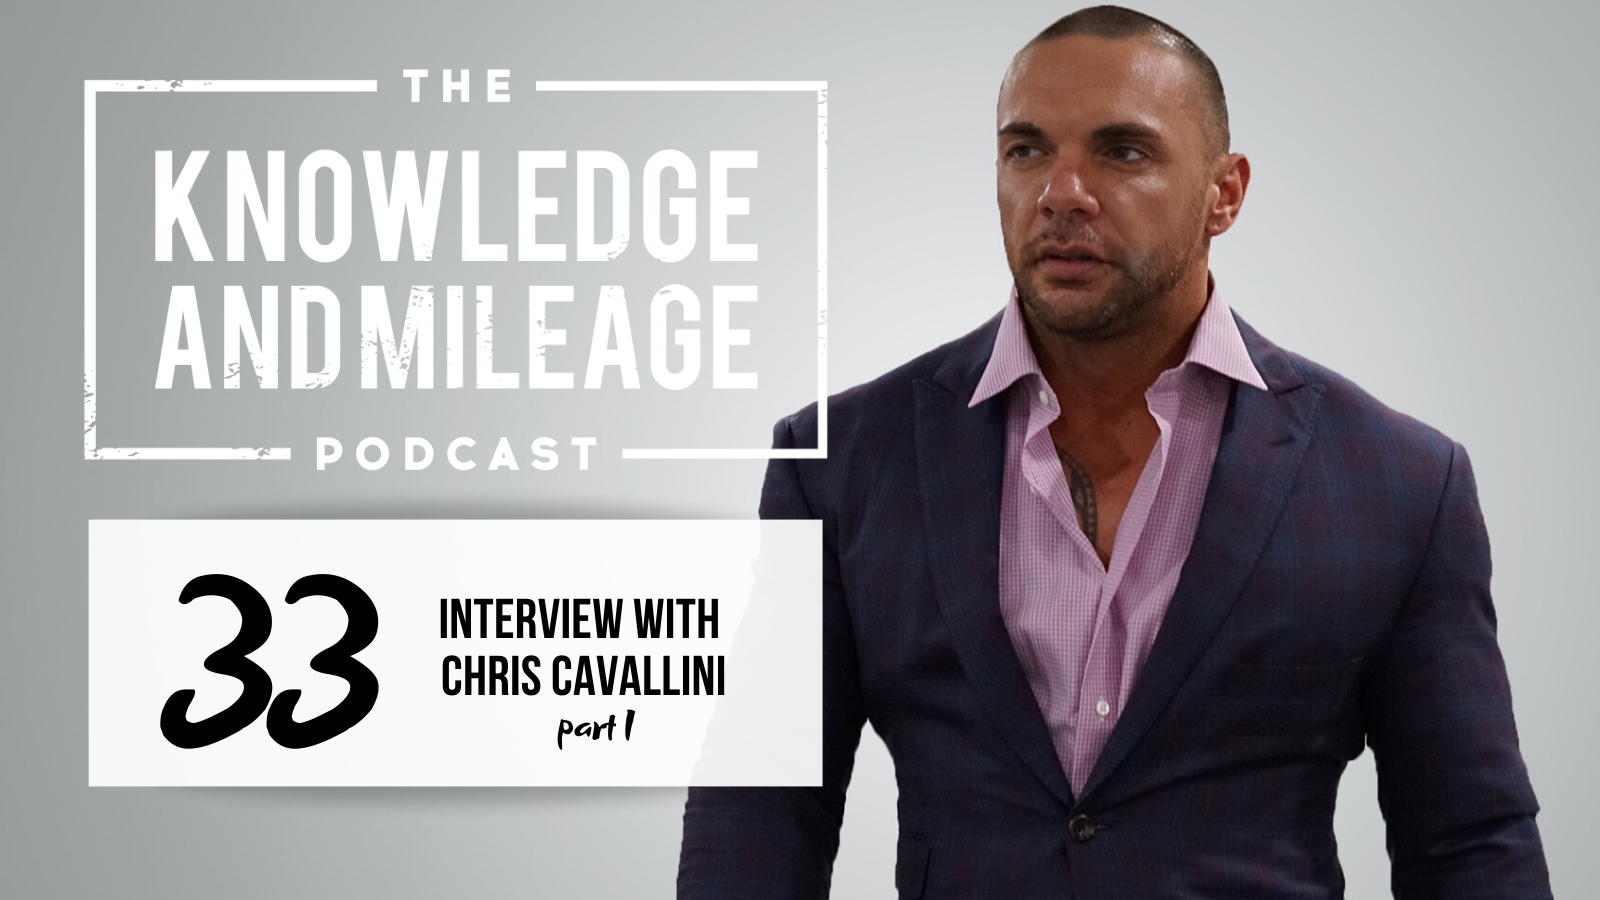 EP 33: Interview with Chris Cavallini